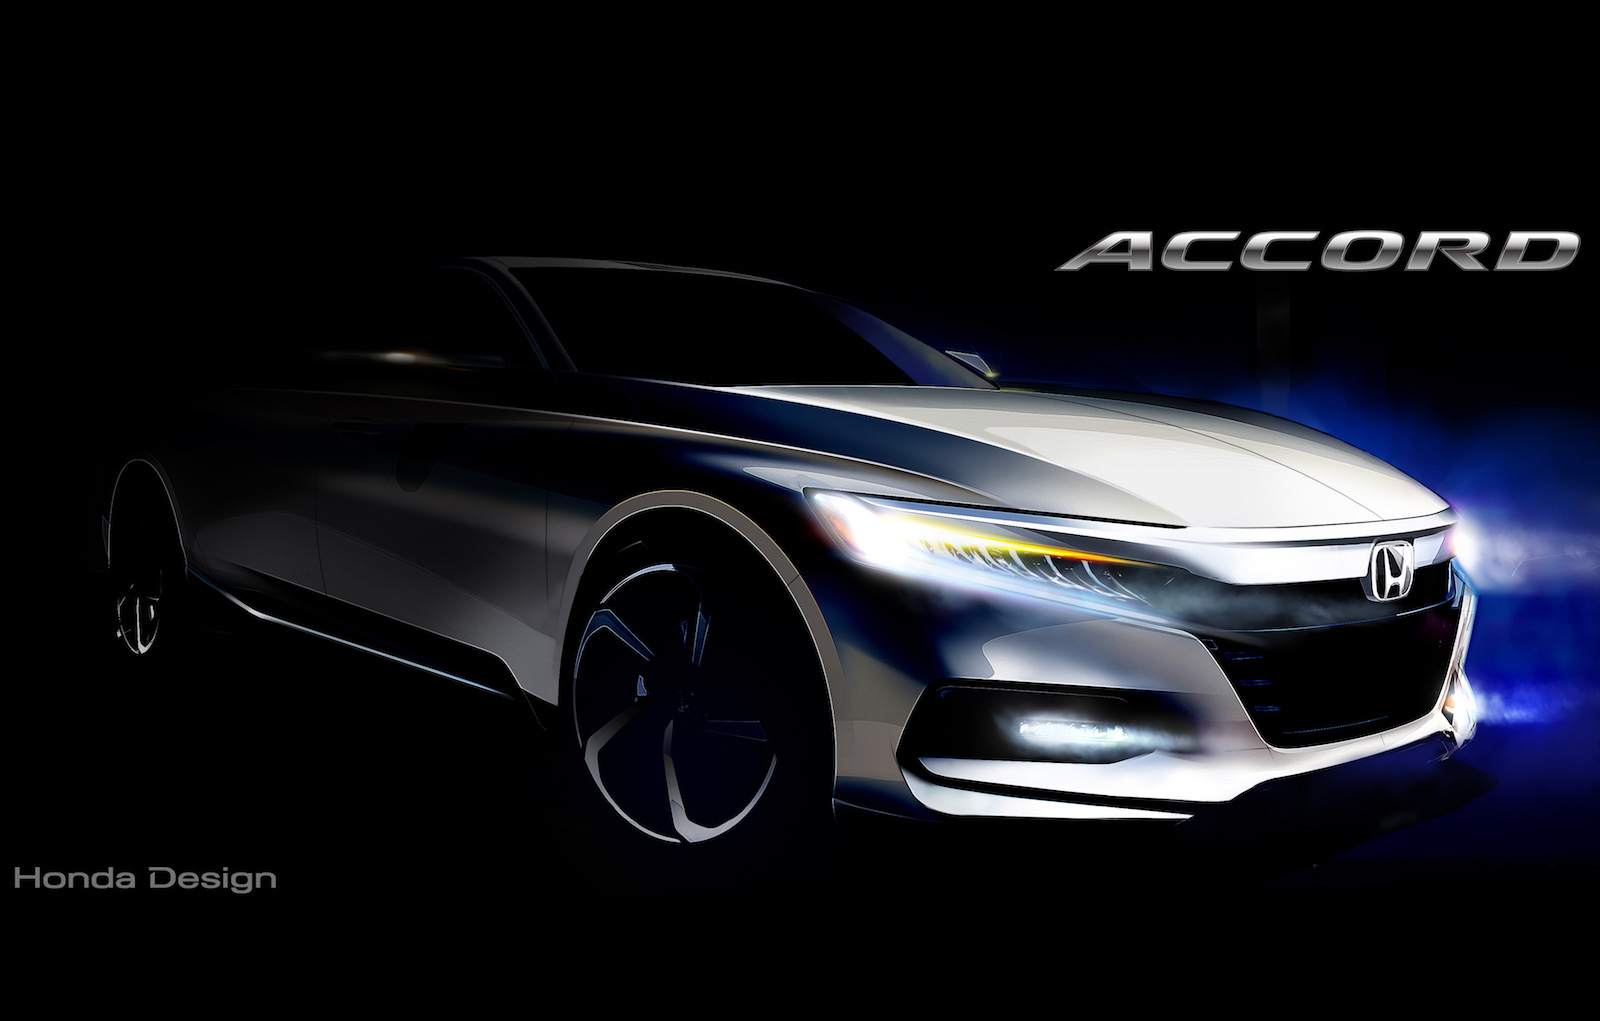 design sketch of the 2018 Honda Accord has been released, previewing ...